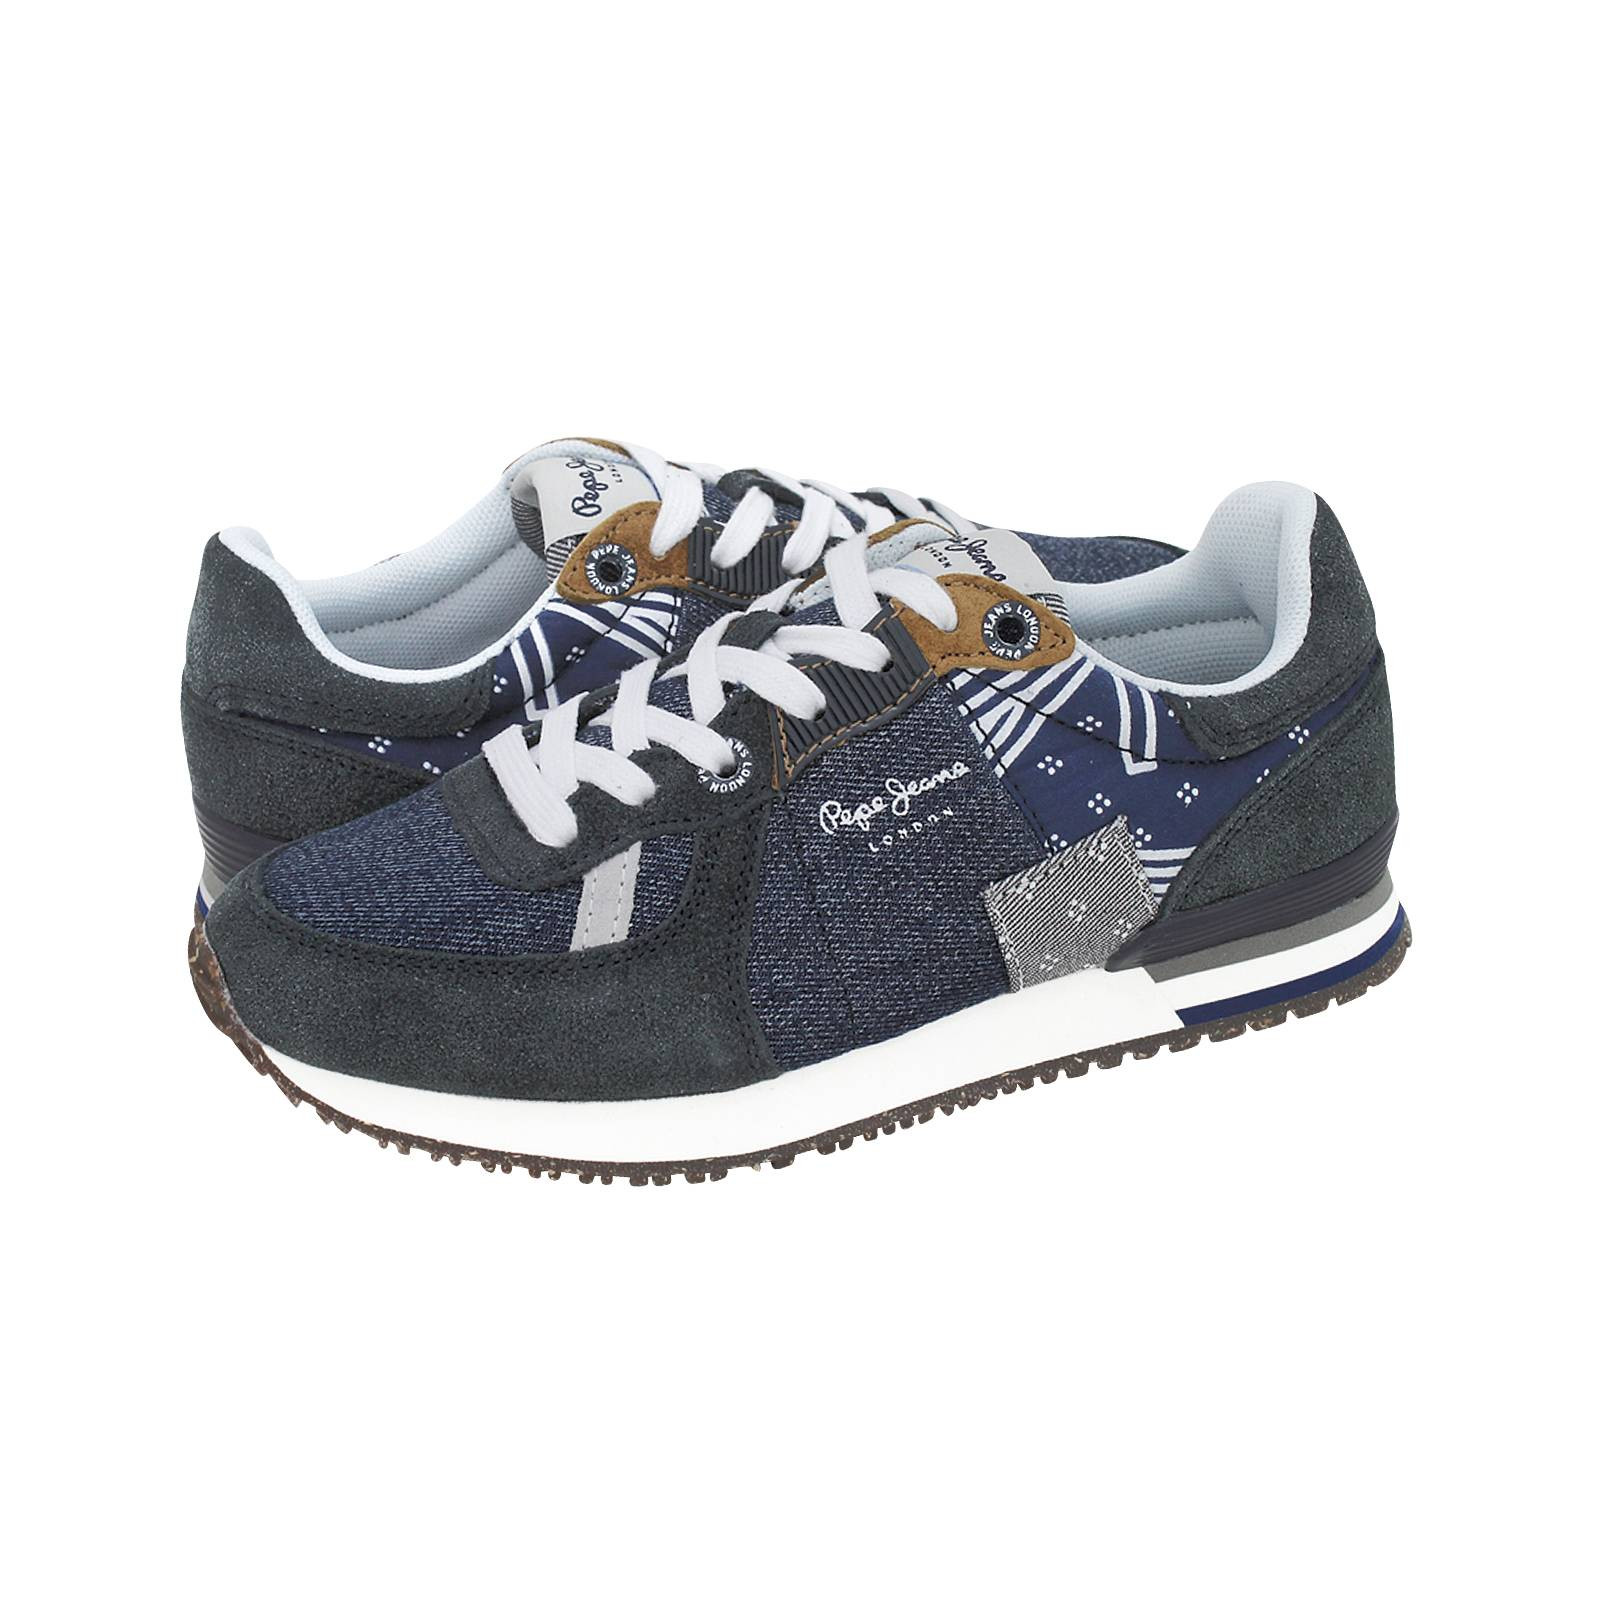 f378d425ab8 Childers - Παιδικά παπούτσια casual Pepe Jeans από υφασμα και ...